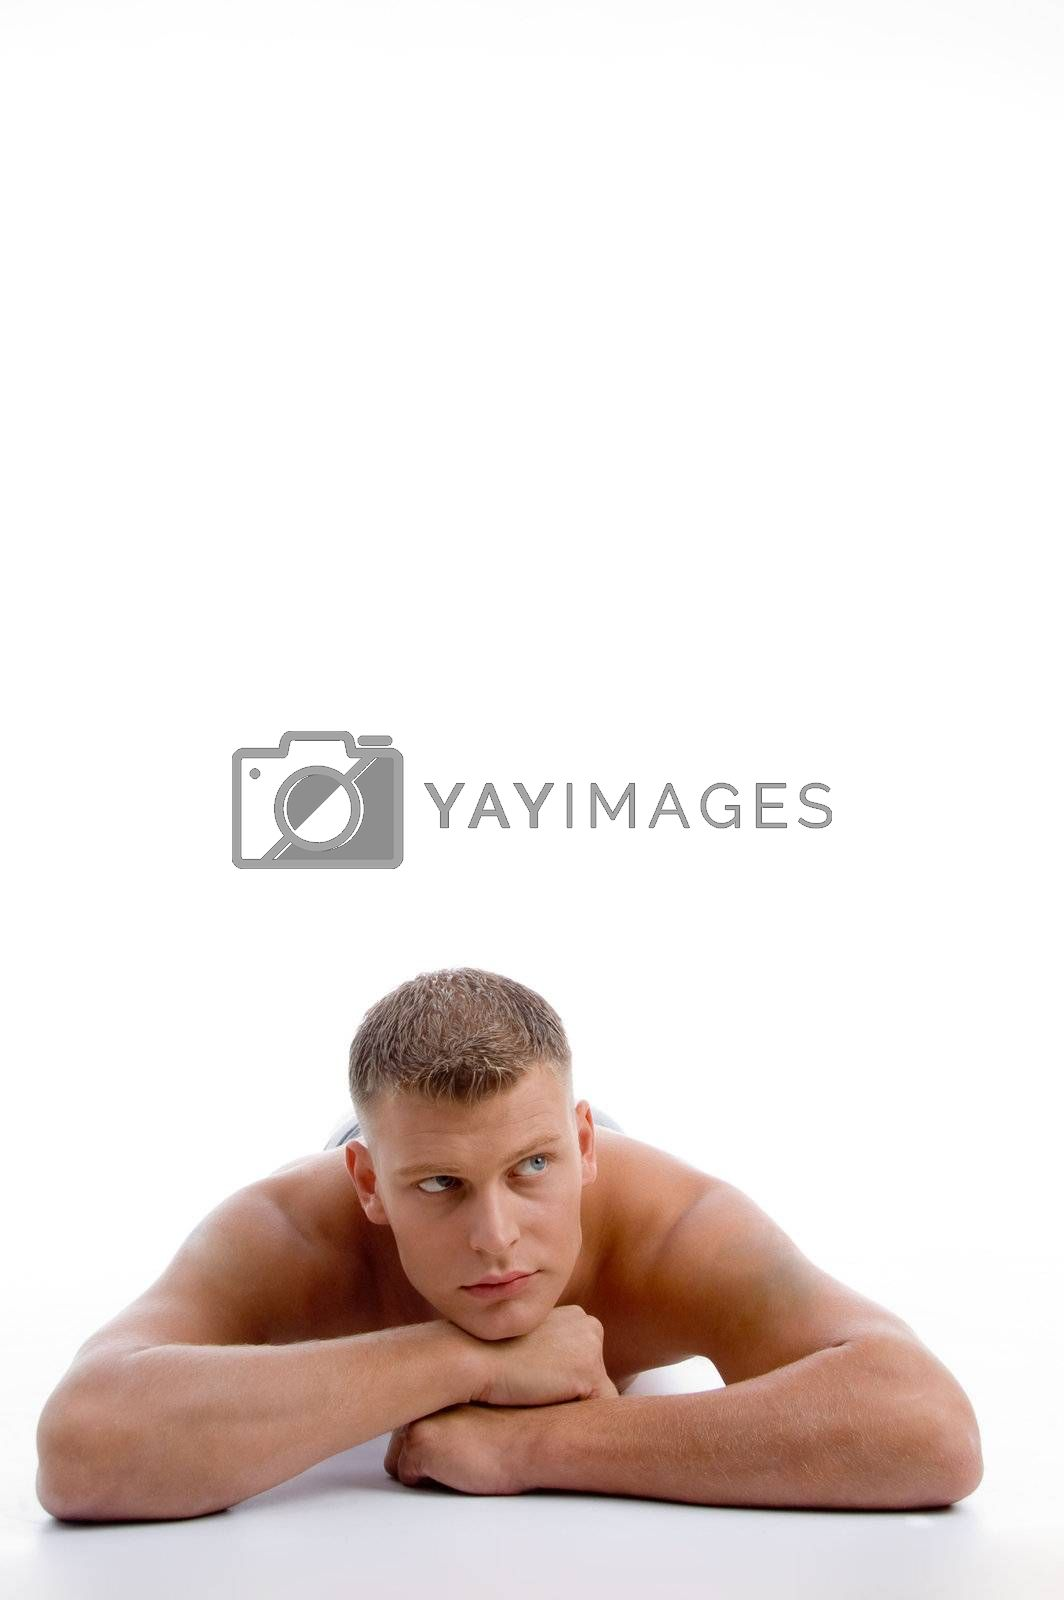 laying muscular male looking aside on an isolated background